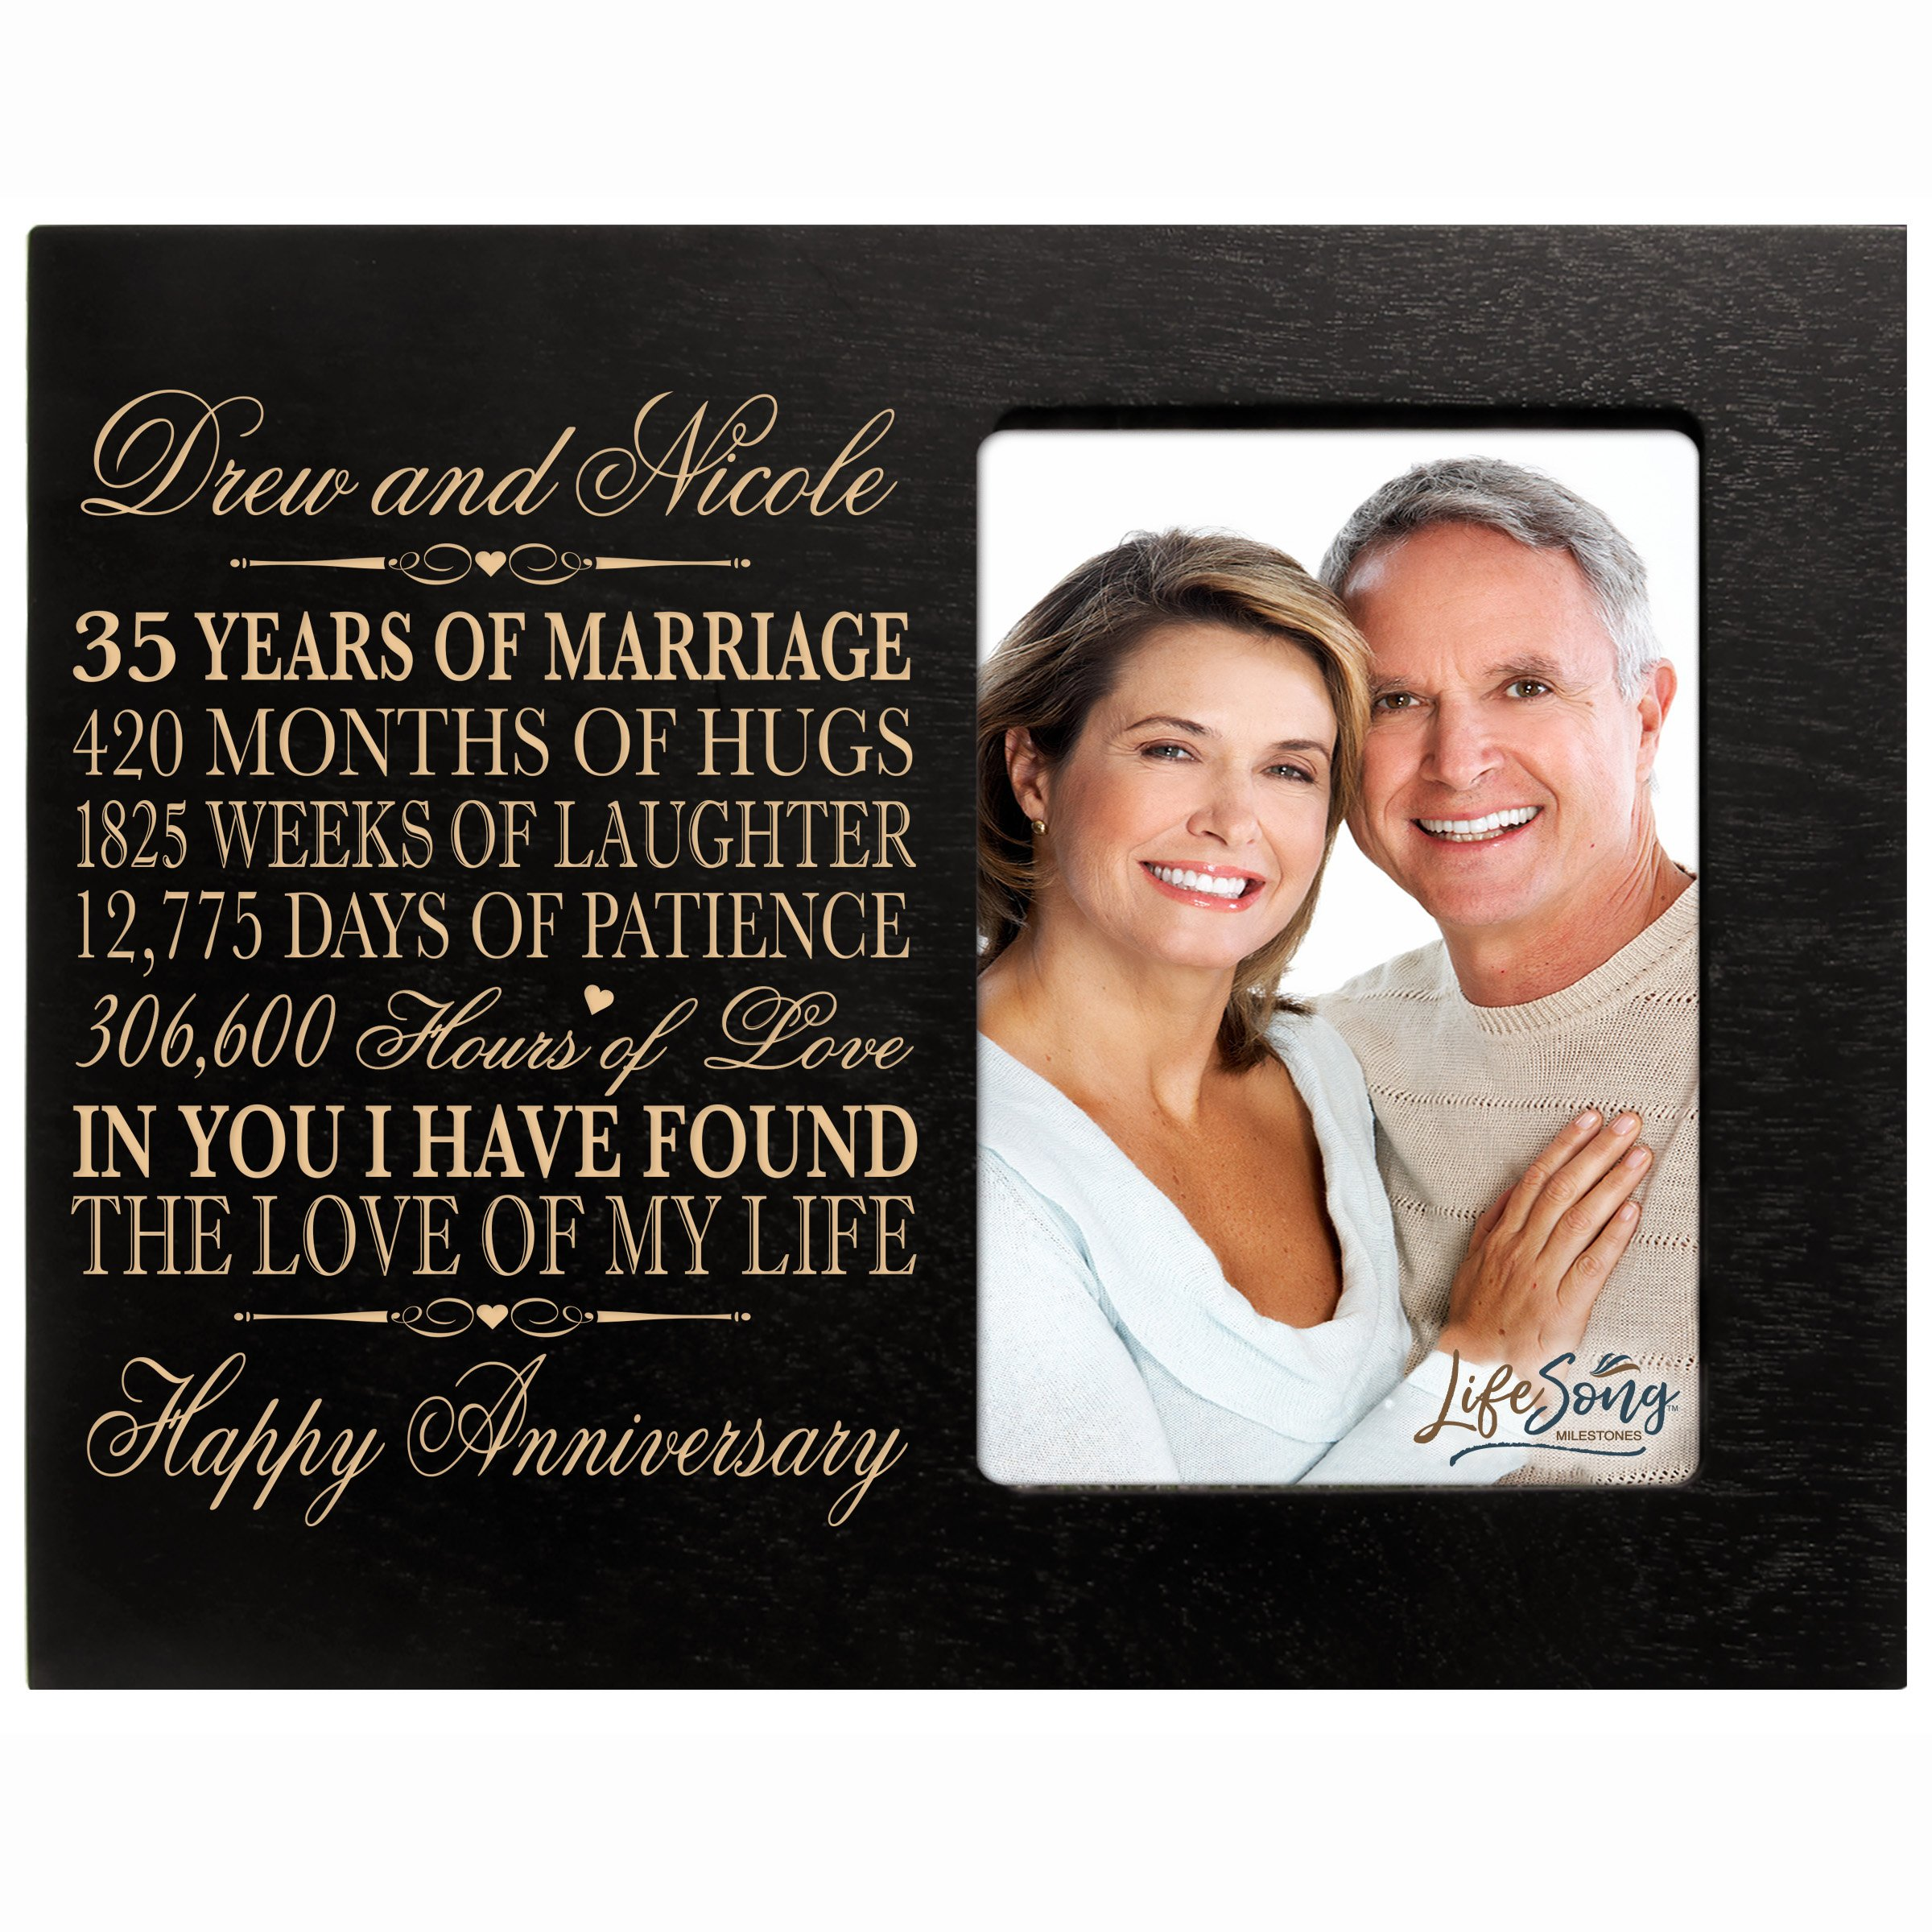 LifeSong Milestones Personalized 35th Year Wedding Anniversary Picture Frame Gift for Couple 35th for Her 35th Wedding for Him Photo Frame Holds 1 4x6 Photo 8'' H X 10'' W (Black)